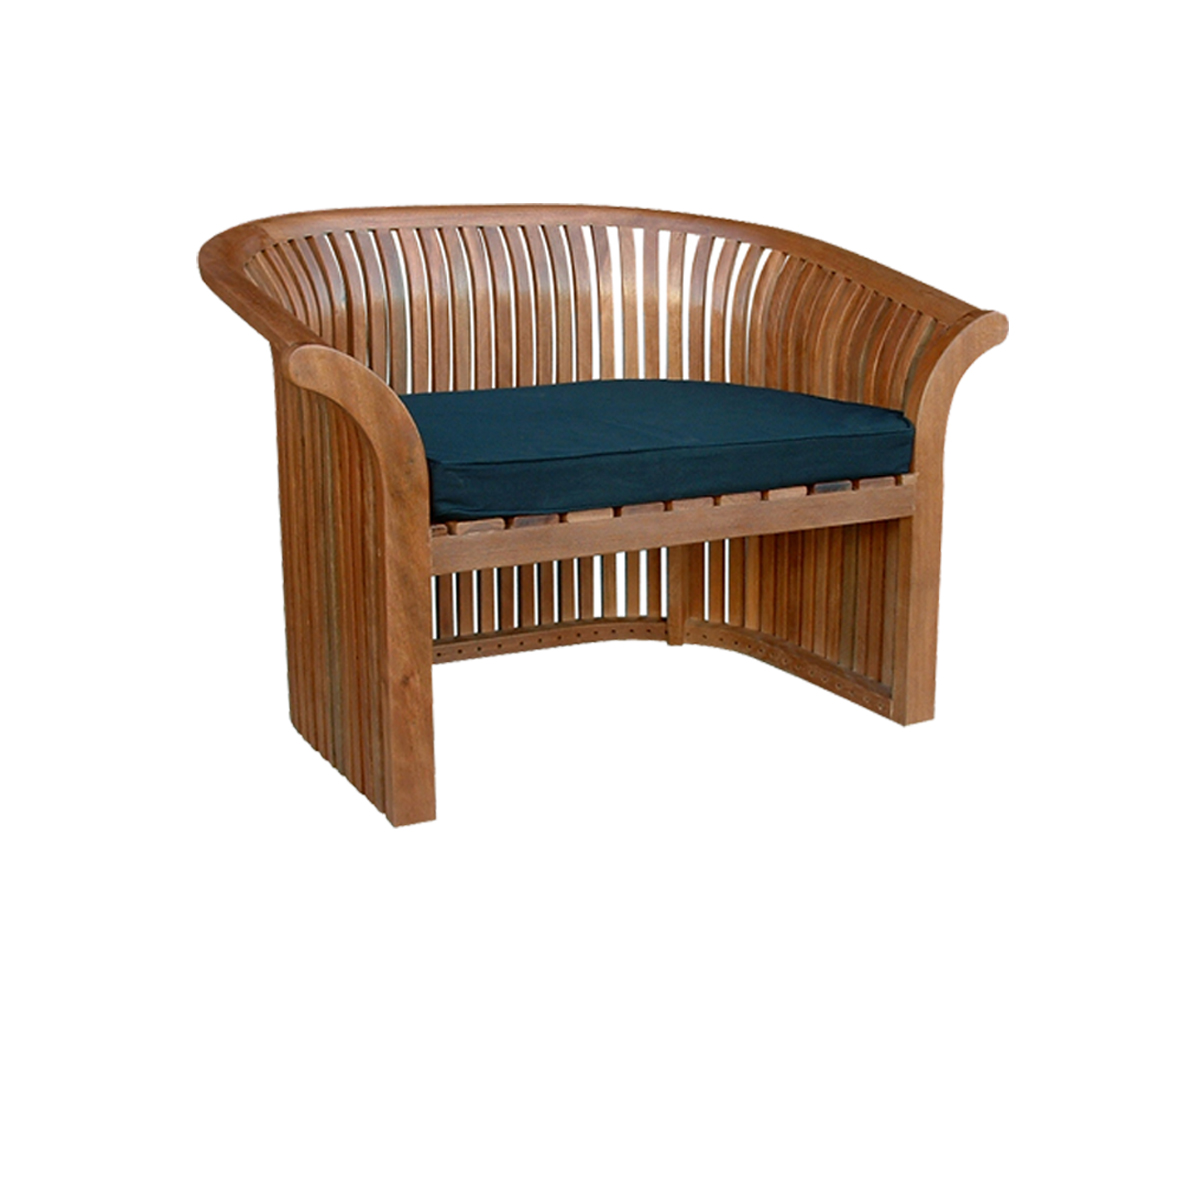 Peachy Madison Armchair Redwood Download Free Architecture Designs Scobabritishbridgeorg